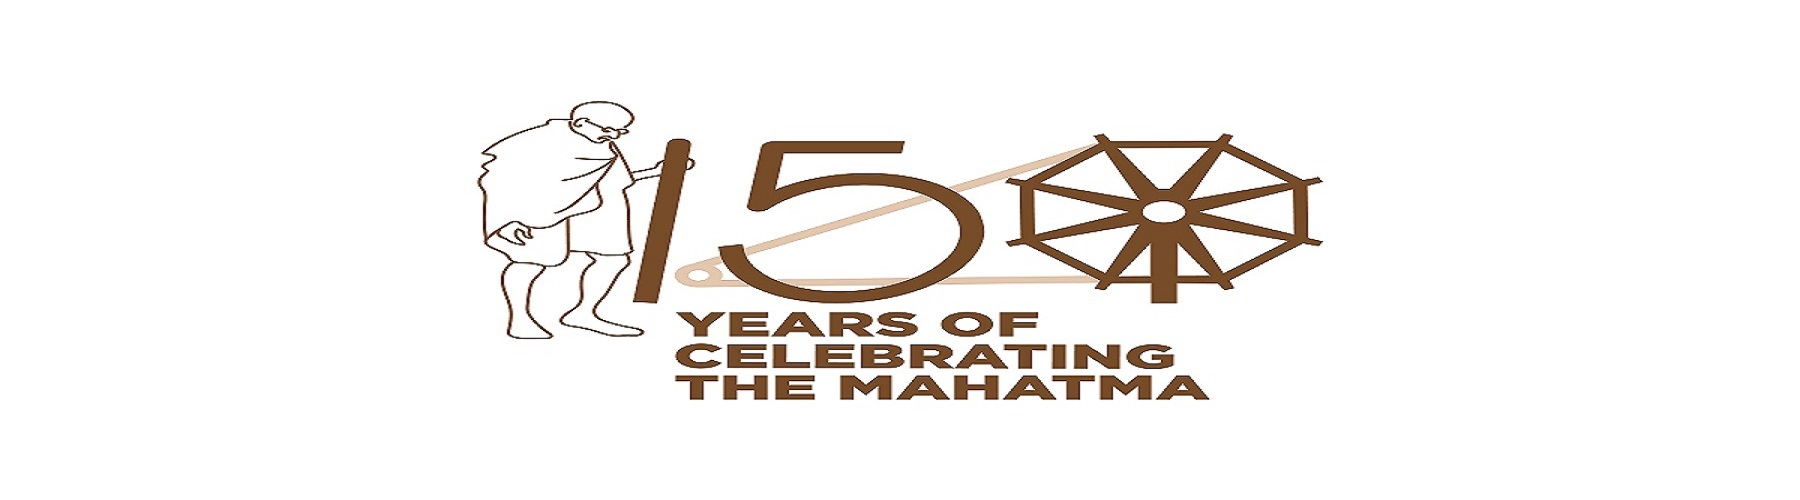 Celebrate 150th Birth Anniversary of Mahatma Gandhi